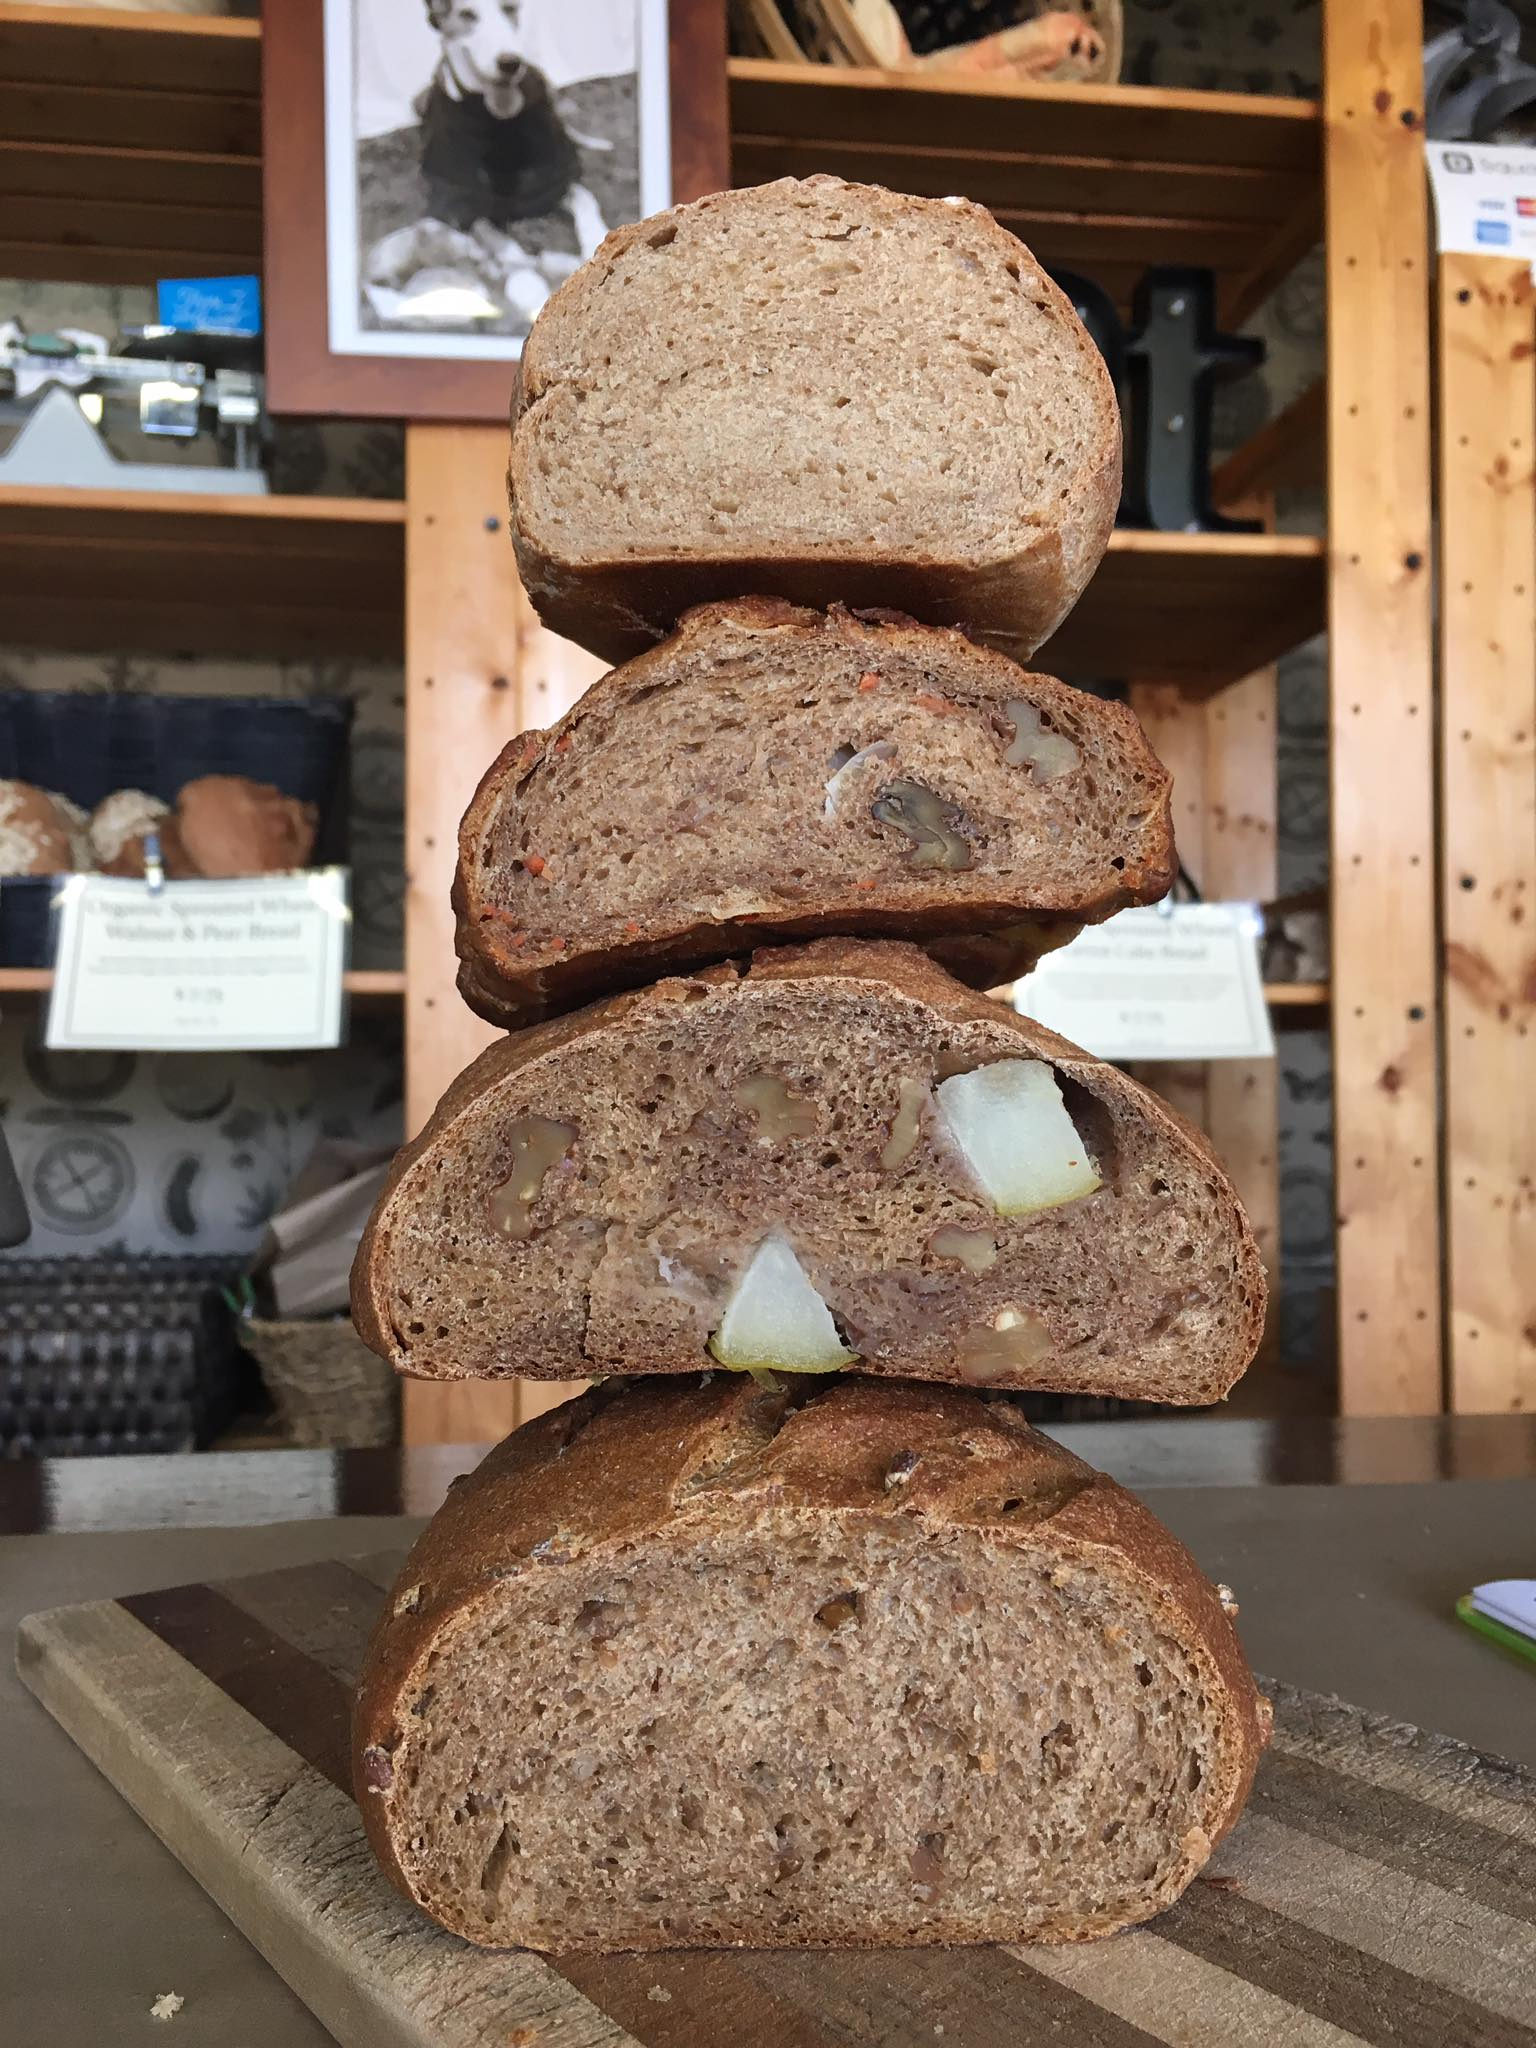 The cut side of some of our Organic Sprouted Artisan loaves. Do you know which ones?